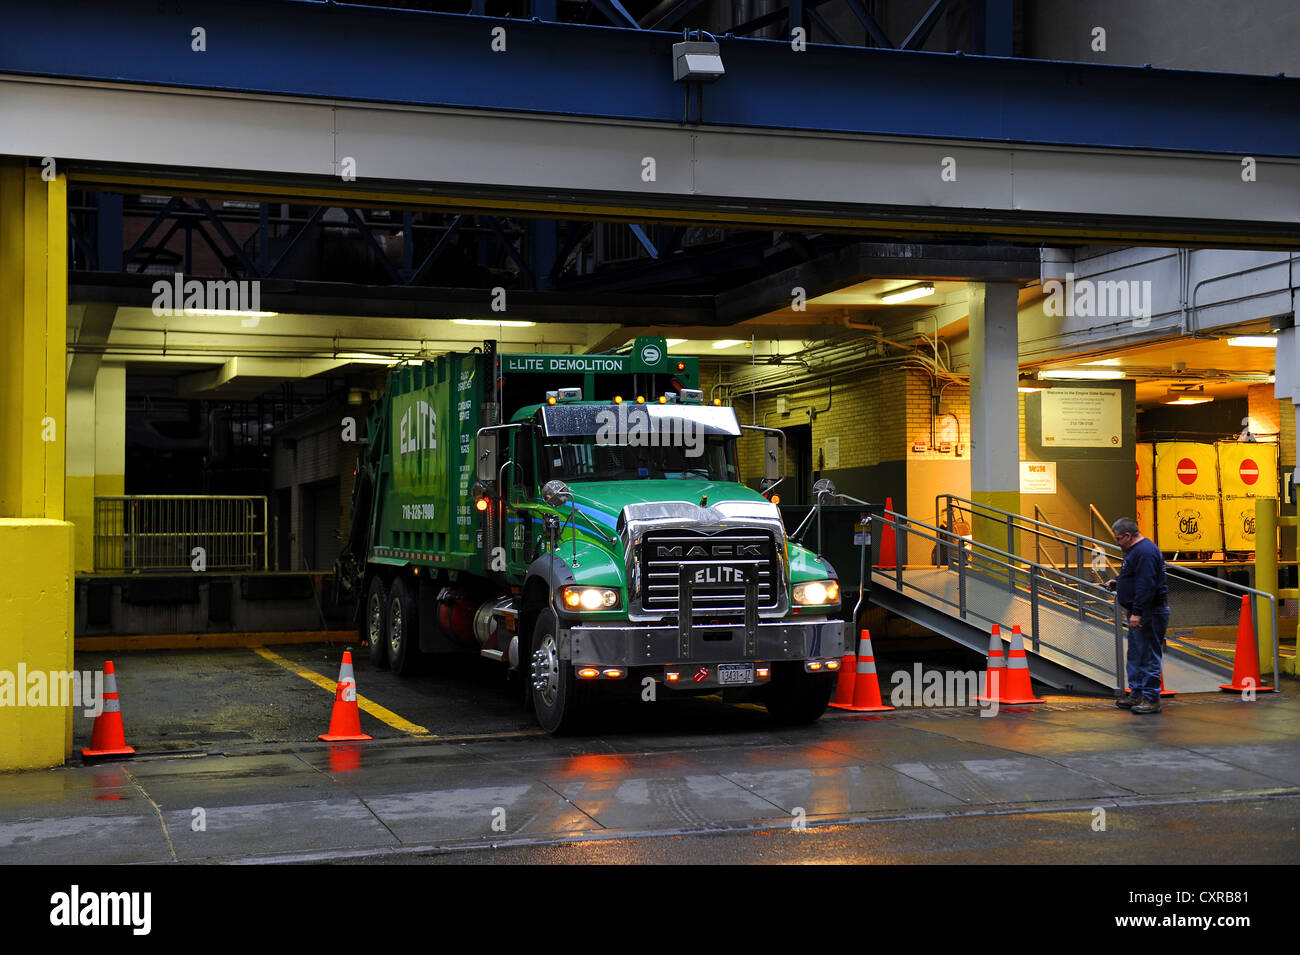 Garbage truck, Elite Demolition, Midtown Manhattan, New York City, New York, USA, United States of America, North - Stock Image